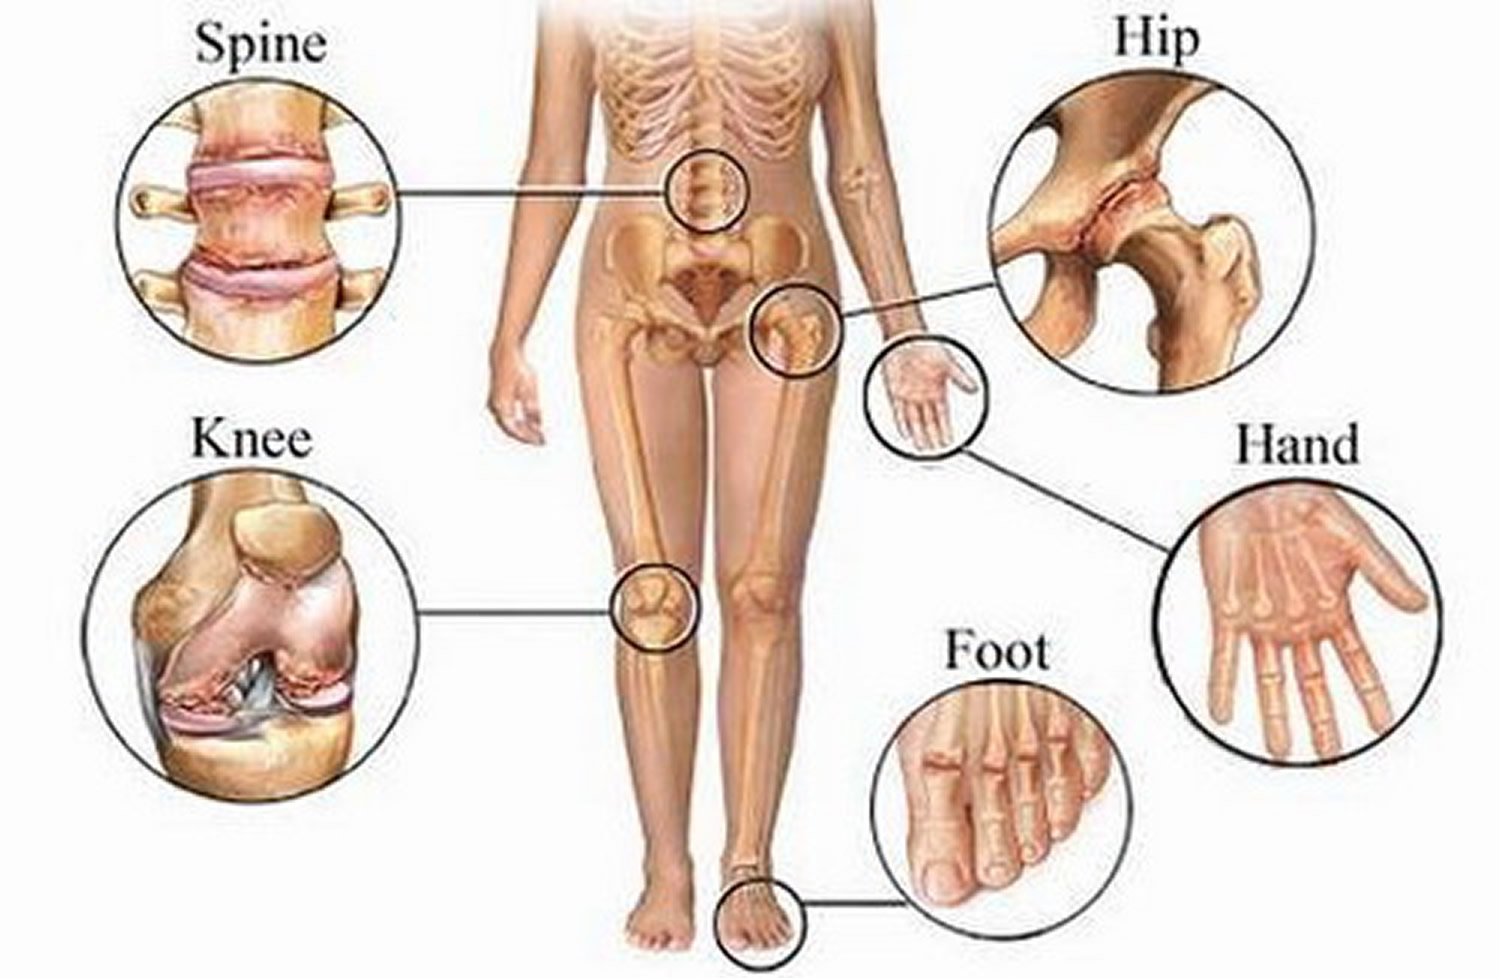 Types & Classification of Body Joints - Cartilaginous & Synovial Joint